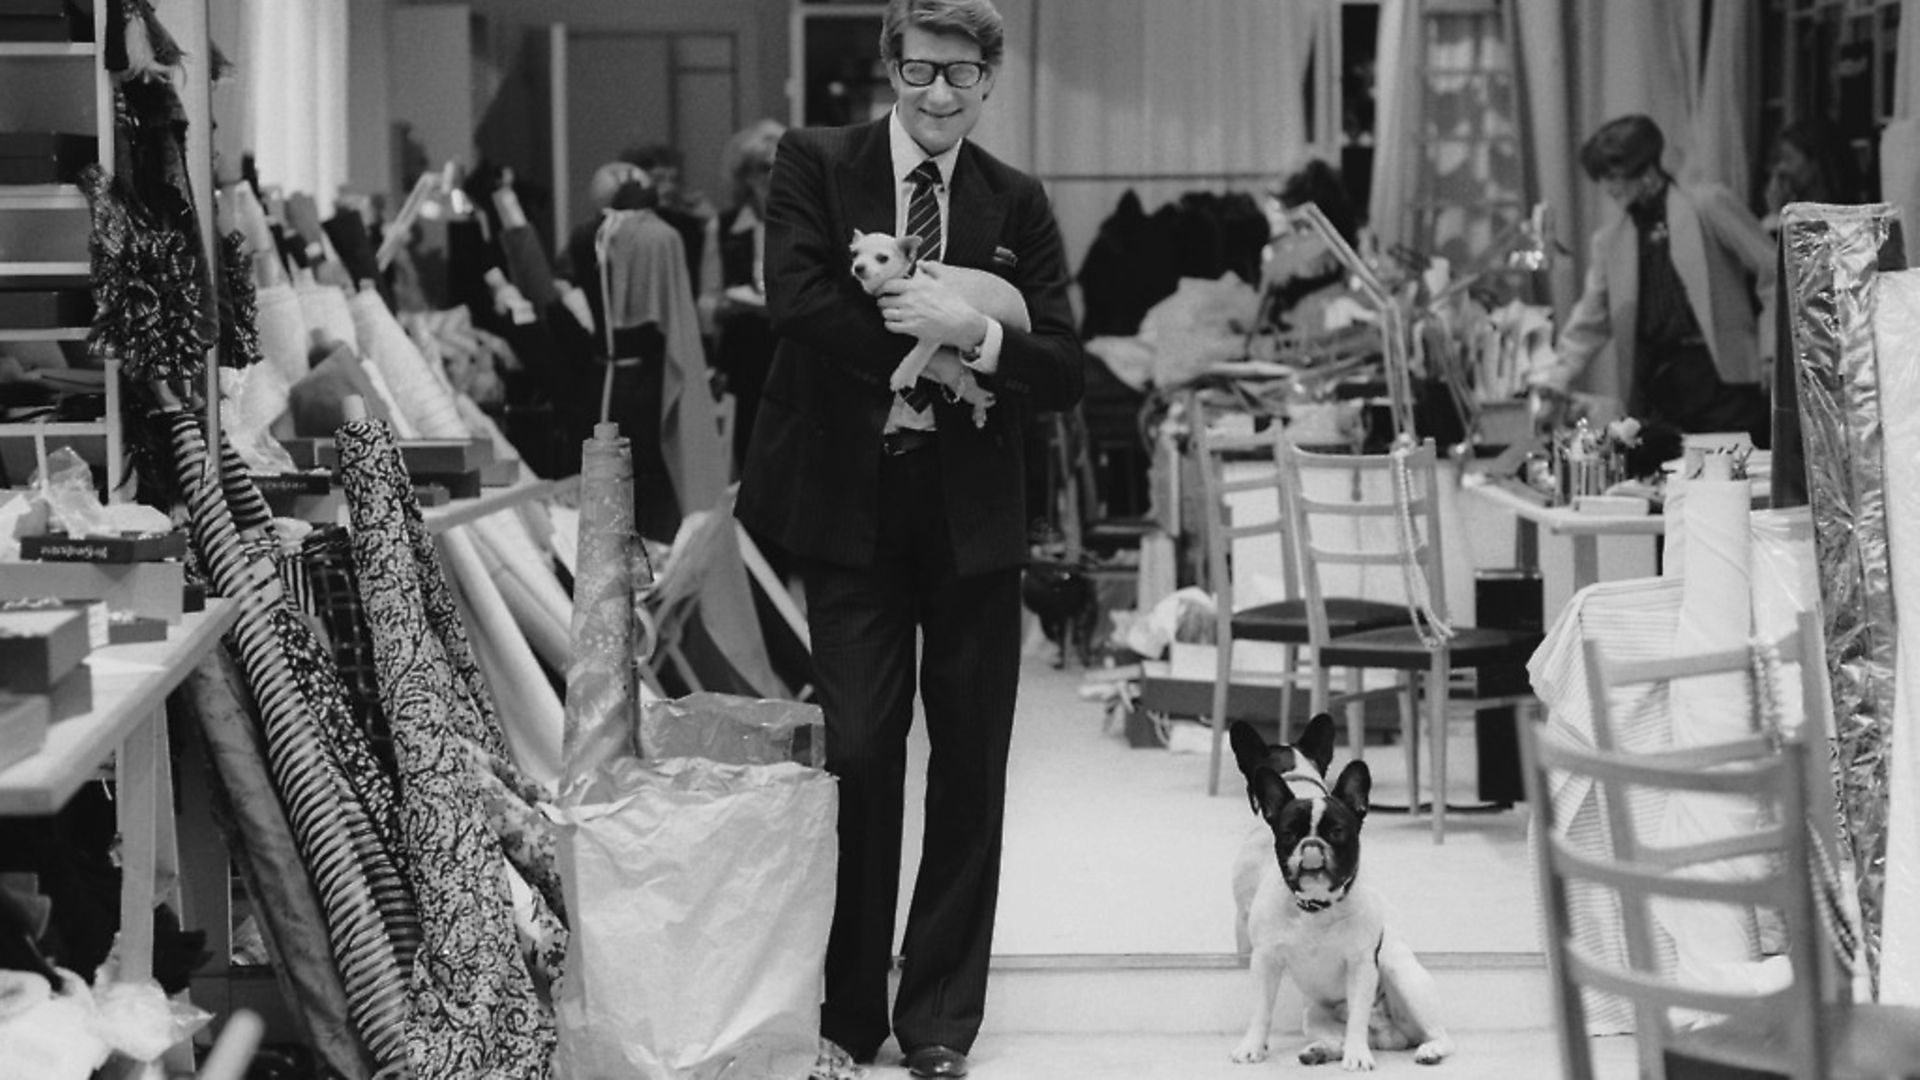 French fashion designer Yves Saint Laurent (1936 - 2008) in his Paris studio, January 1982. (Photo by John Downing/Getty Images) - Credit: Getty Images